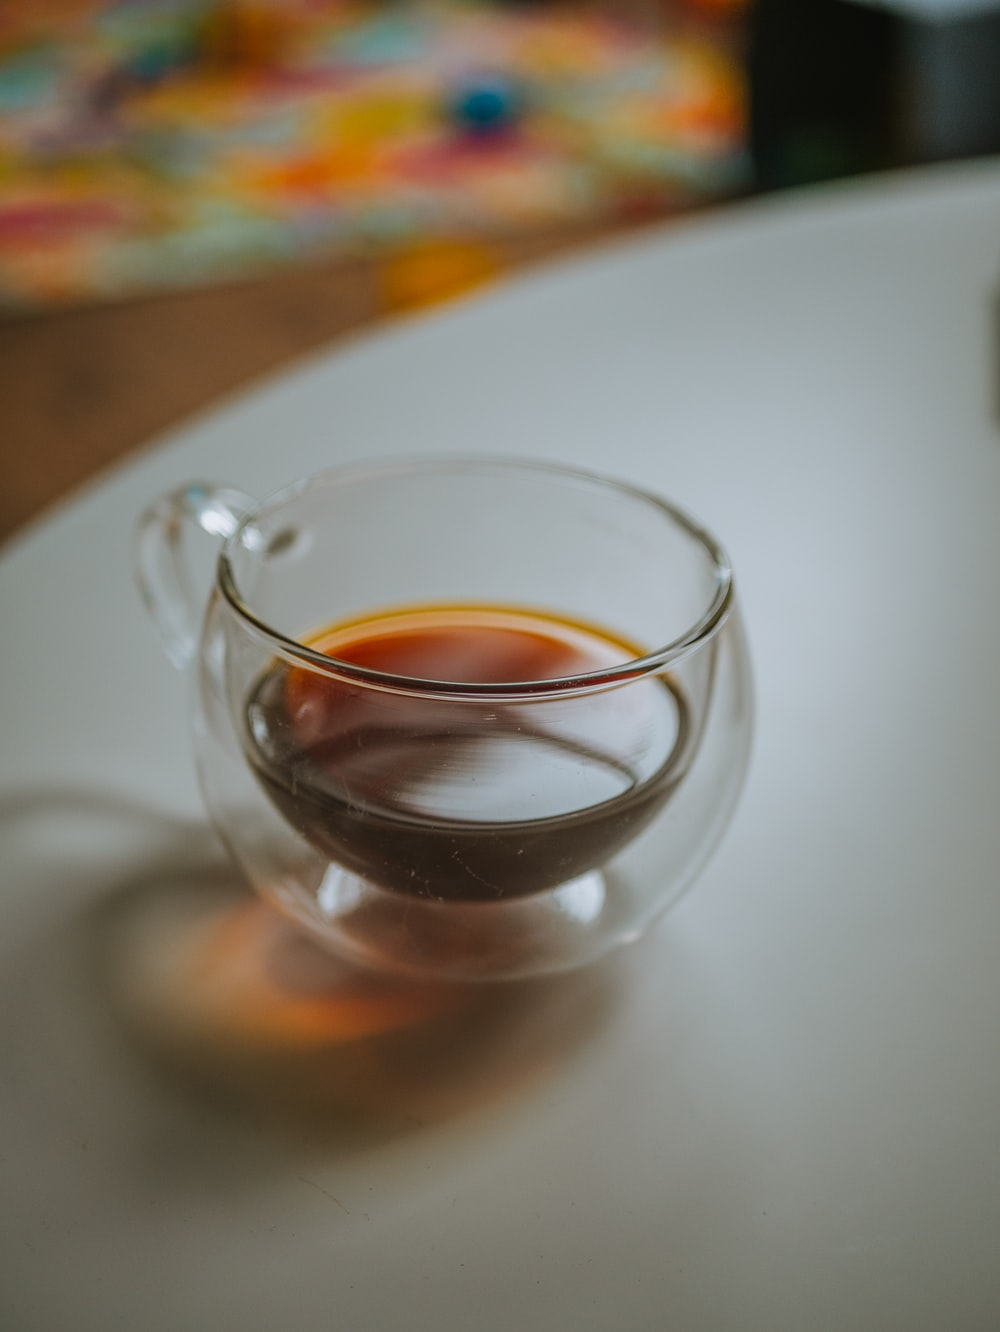 clear glass teacup on white table